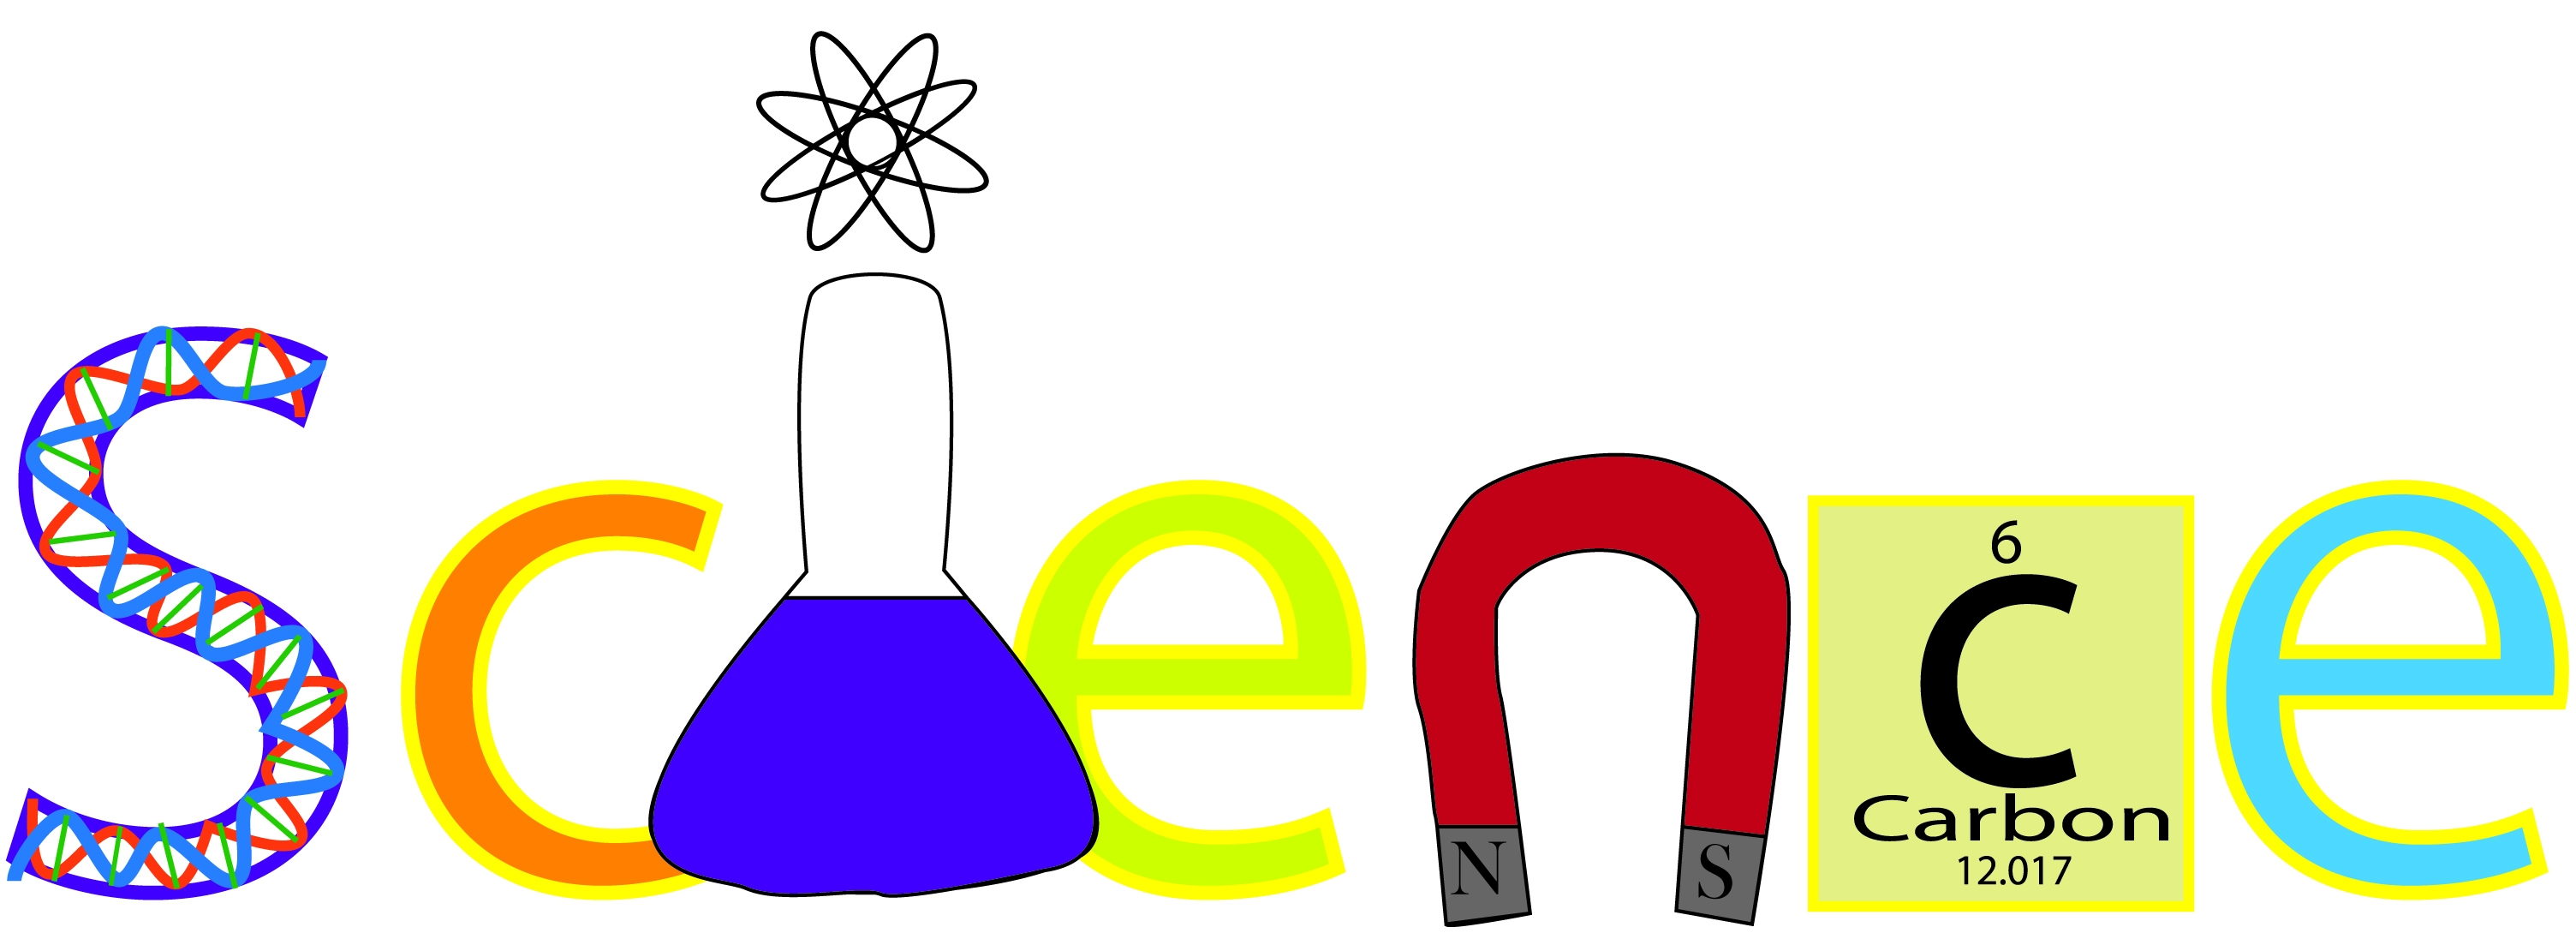 Free science word cliparts. Words clipart project